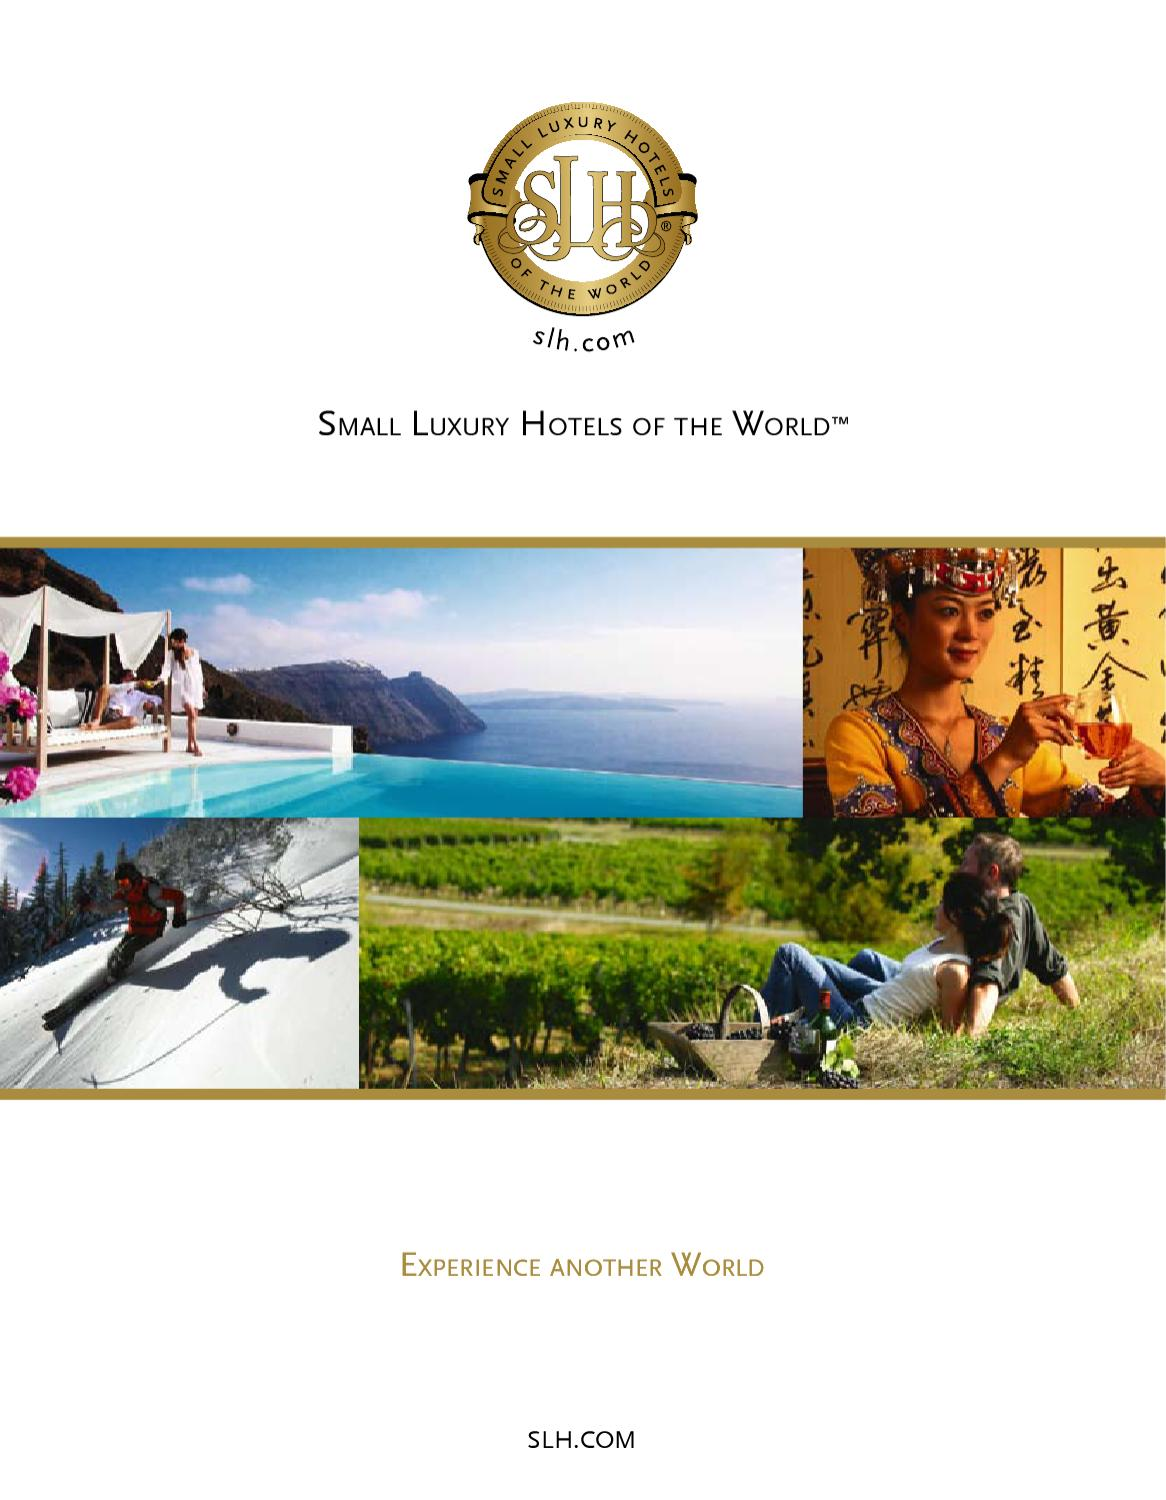 Small luxury hotels of the world 2012 by strattons issuu for Small luxury hotel group